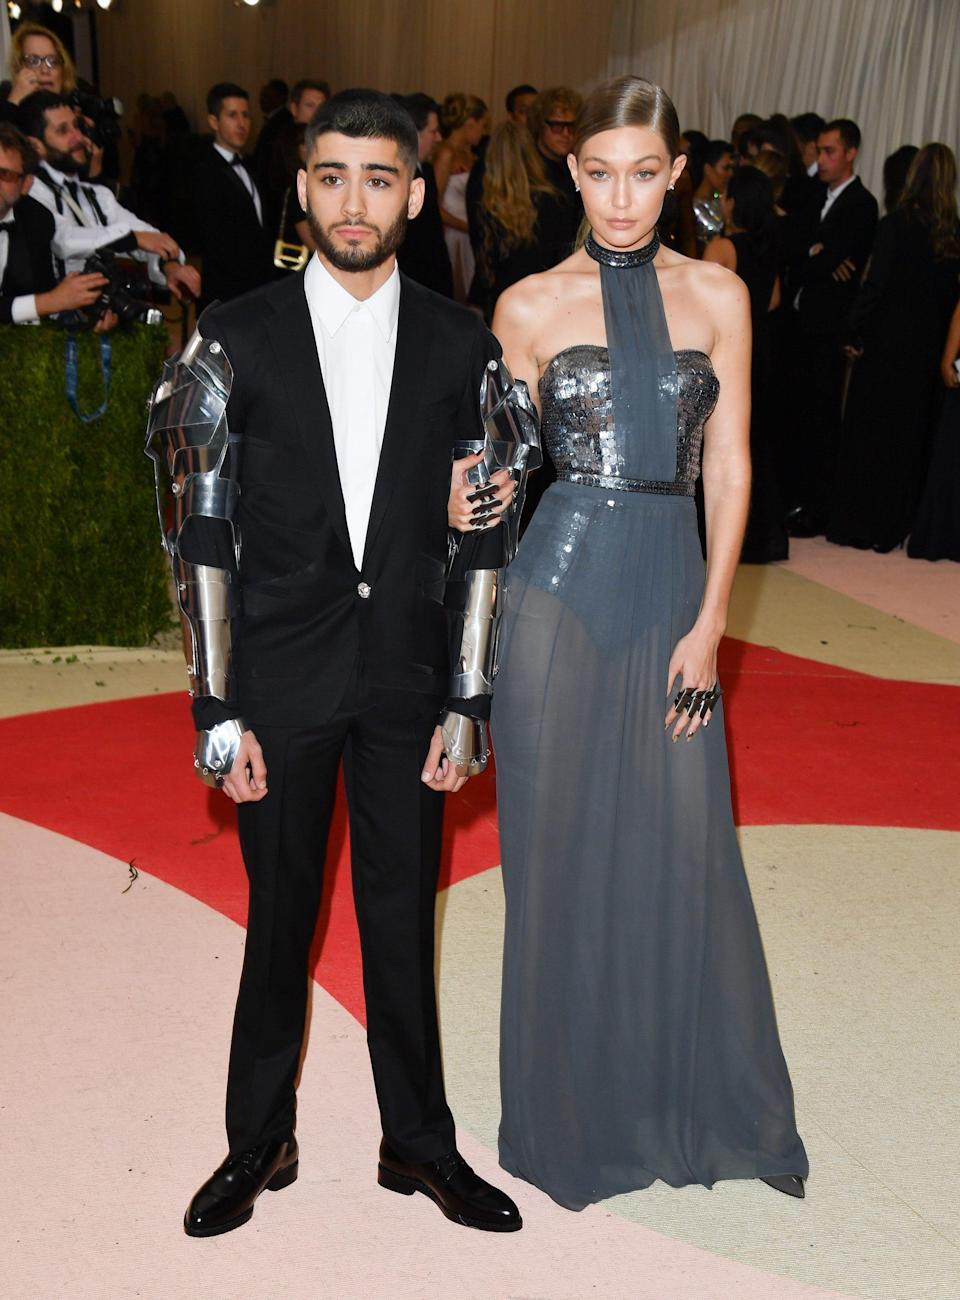 Zayn Malik stands in a suit and Gigi Hadid holds his arm wearing a grey dress on a red carpet.